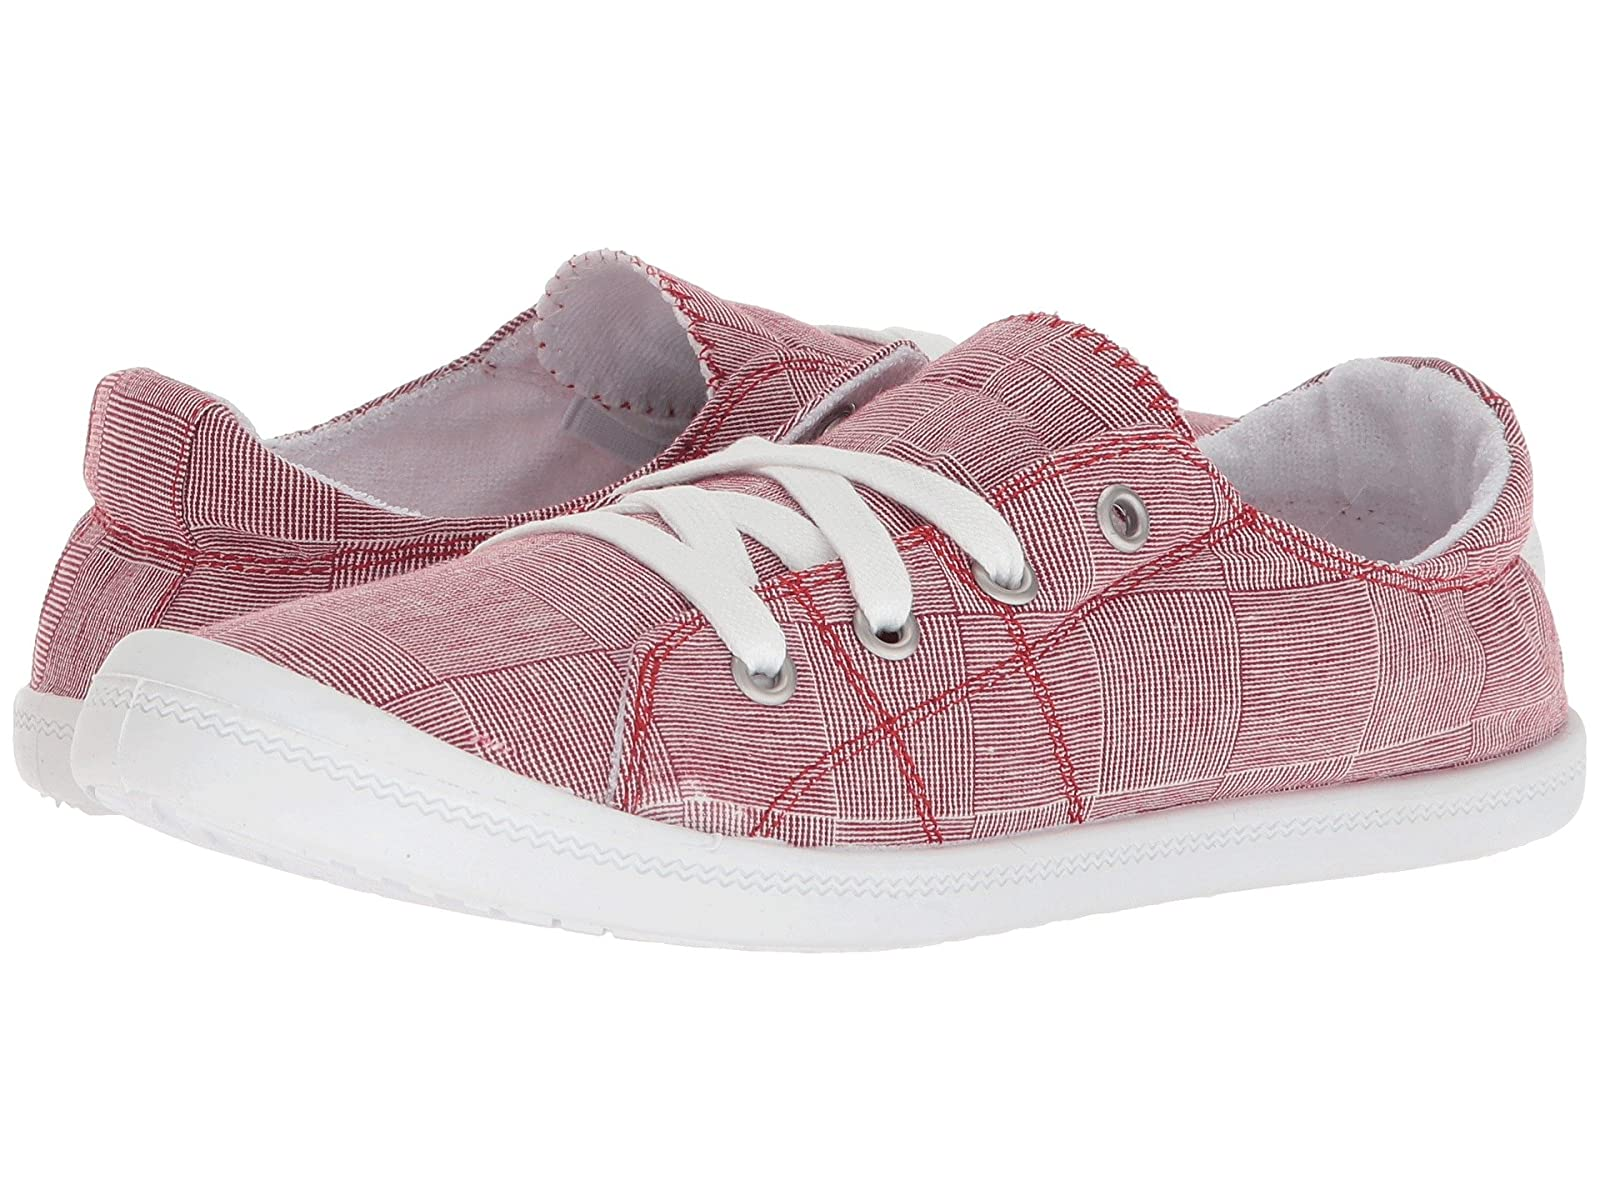 Not Rated RayzaAtmospheric grades have affordable shoes